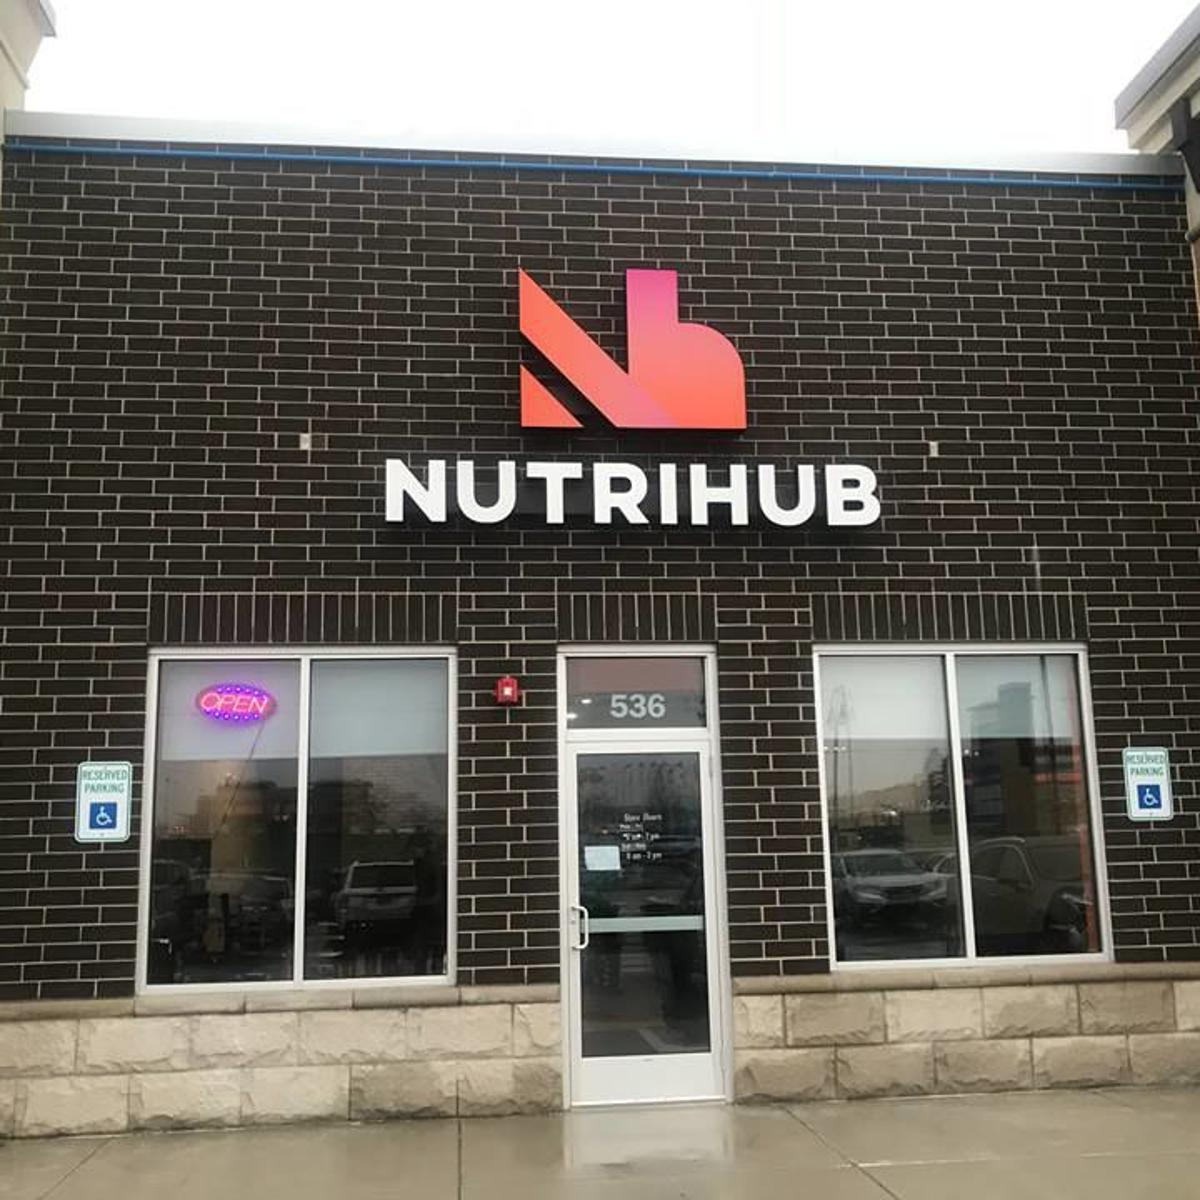 Nwi Business Ins And Outs Nutrihub Coming To Gym Near You Mexican Restaurant Opens In Griffith Mason Jar Opens In Lowell Crew Carwash Coming To Valpo Harbor Freight Tools Opening In Portage